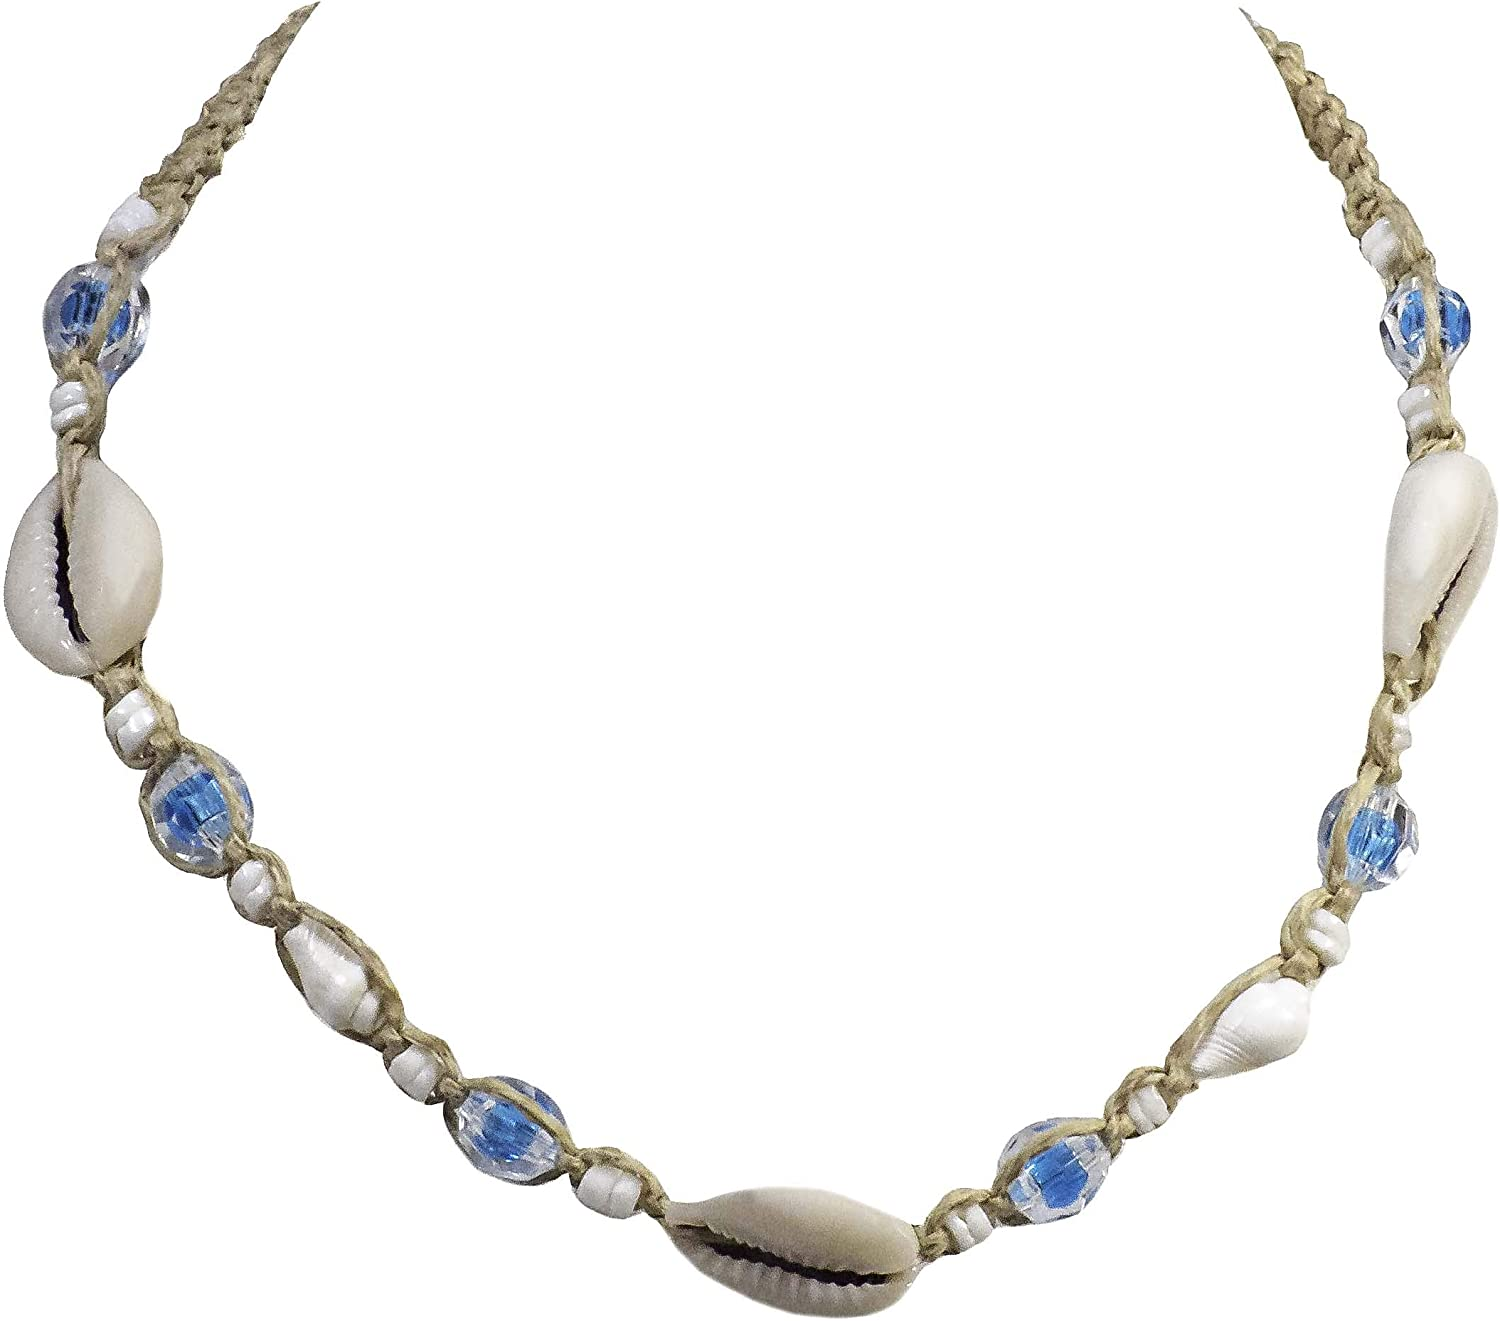 BlueRica Braided Hemp Cord Choker Necklace with Cowrie Shells, Puka Shells and Light Blue Clear Beads